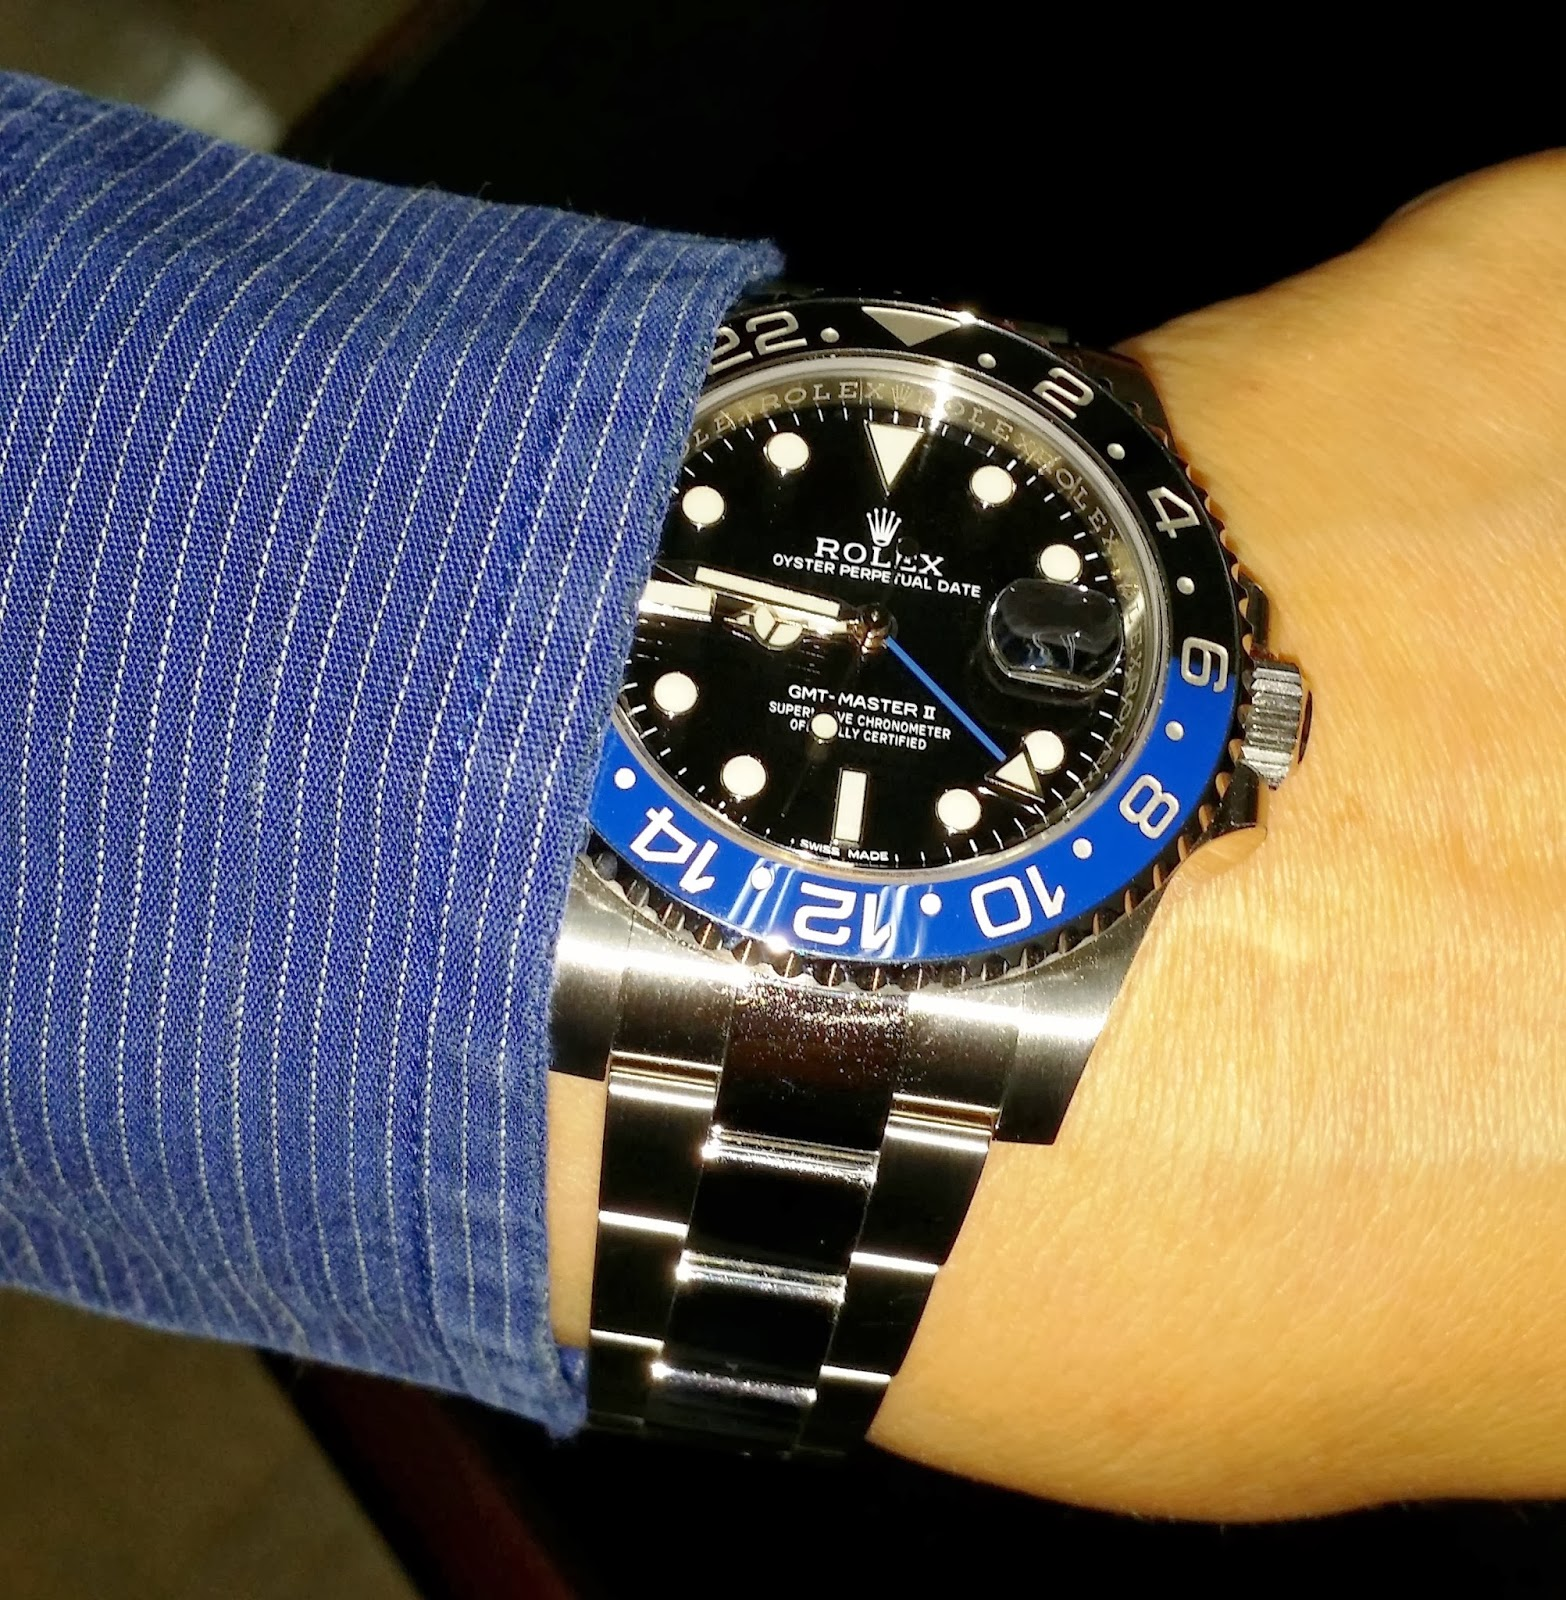 Hong Kong Watch Fever 香港勞友: What I expect Rolex will have in 2014!?